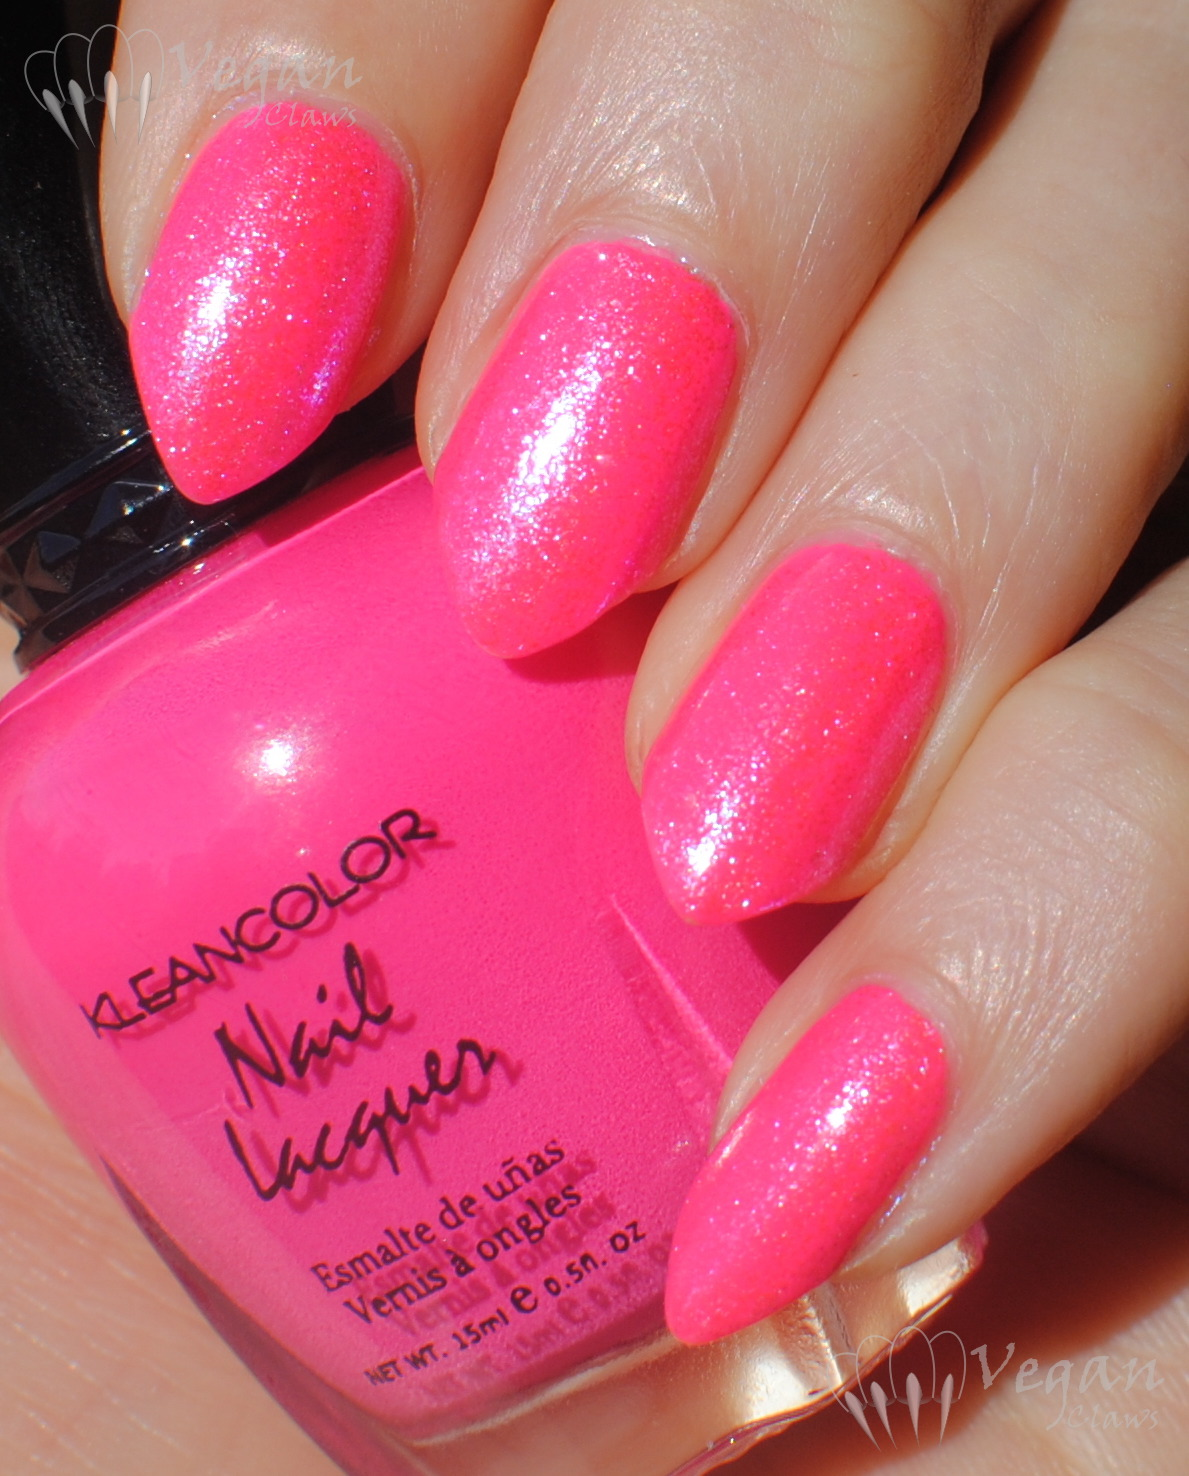 Kleancolor Neon Pink and Starlight Polish Ever Blue | Vegan Claws